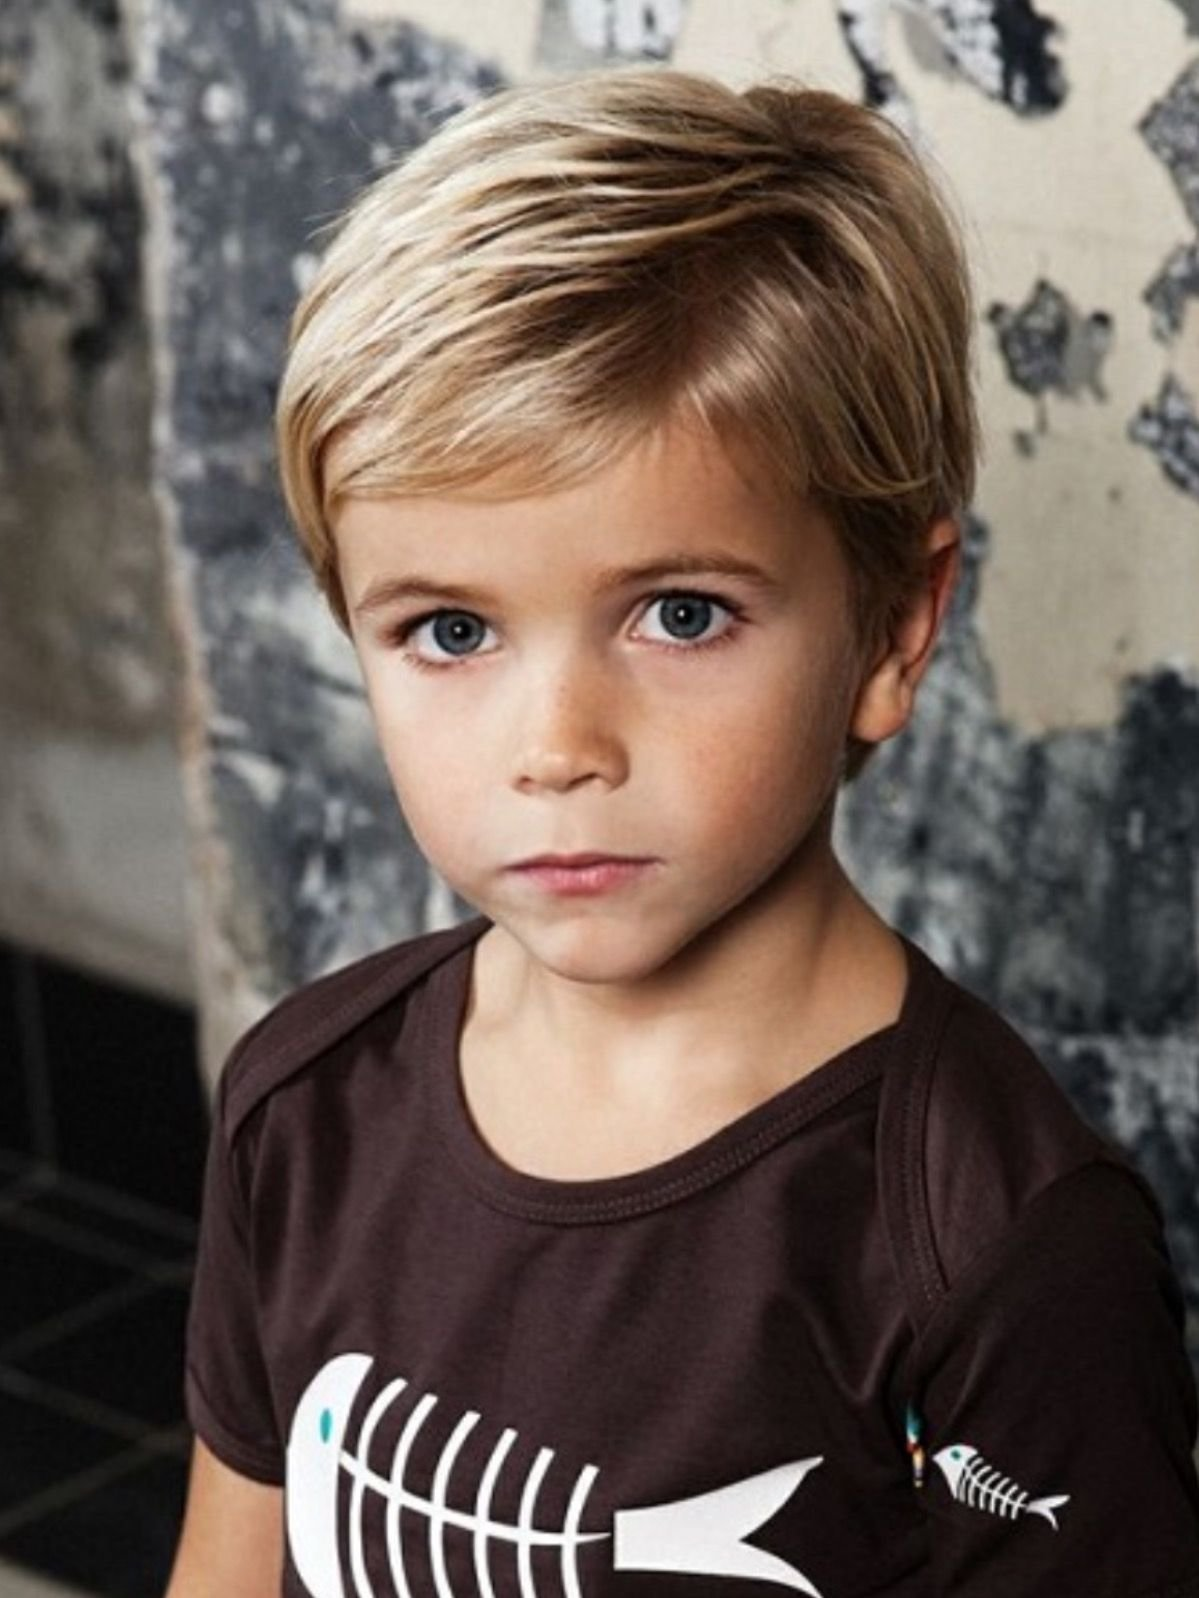 New 11 Year Old Boy Hairstyles Fade Haircut Ideas With Pictures Original 1024 x 768